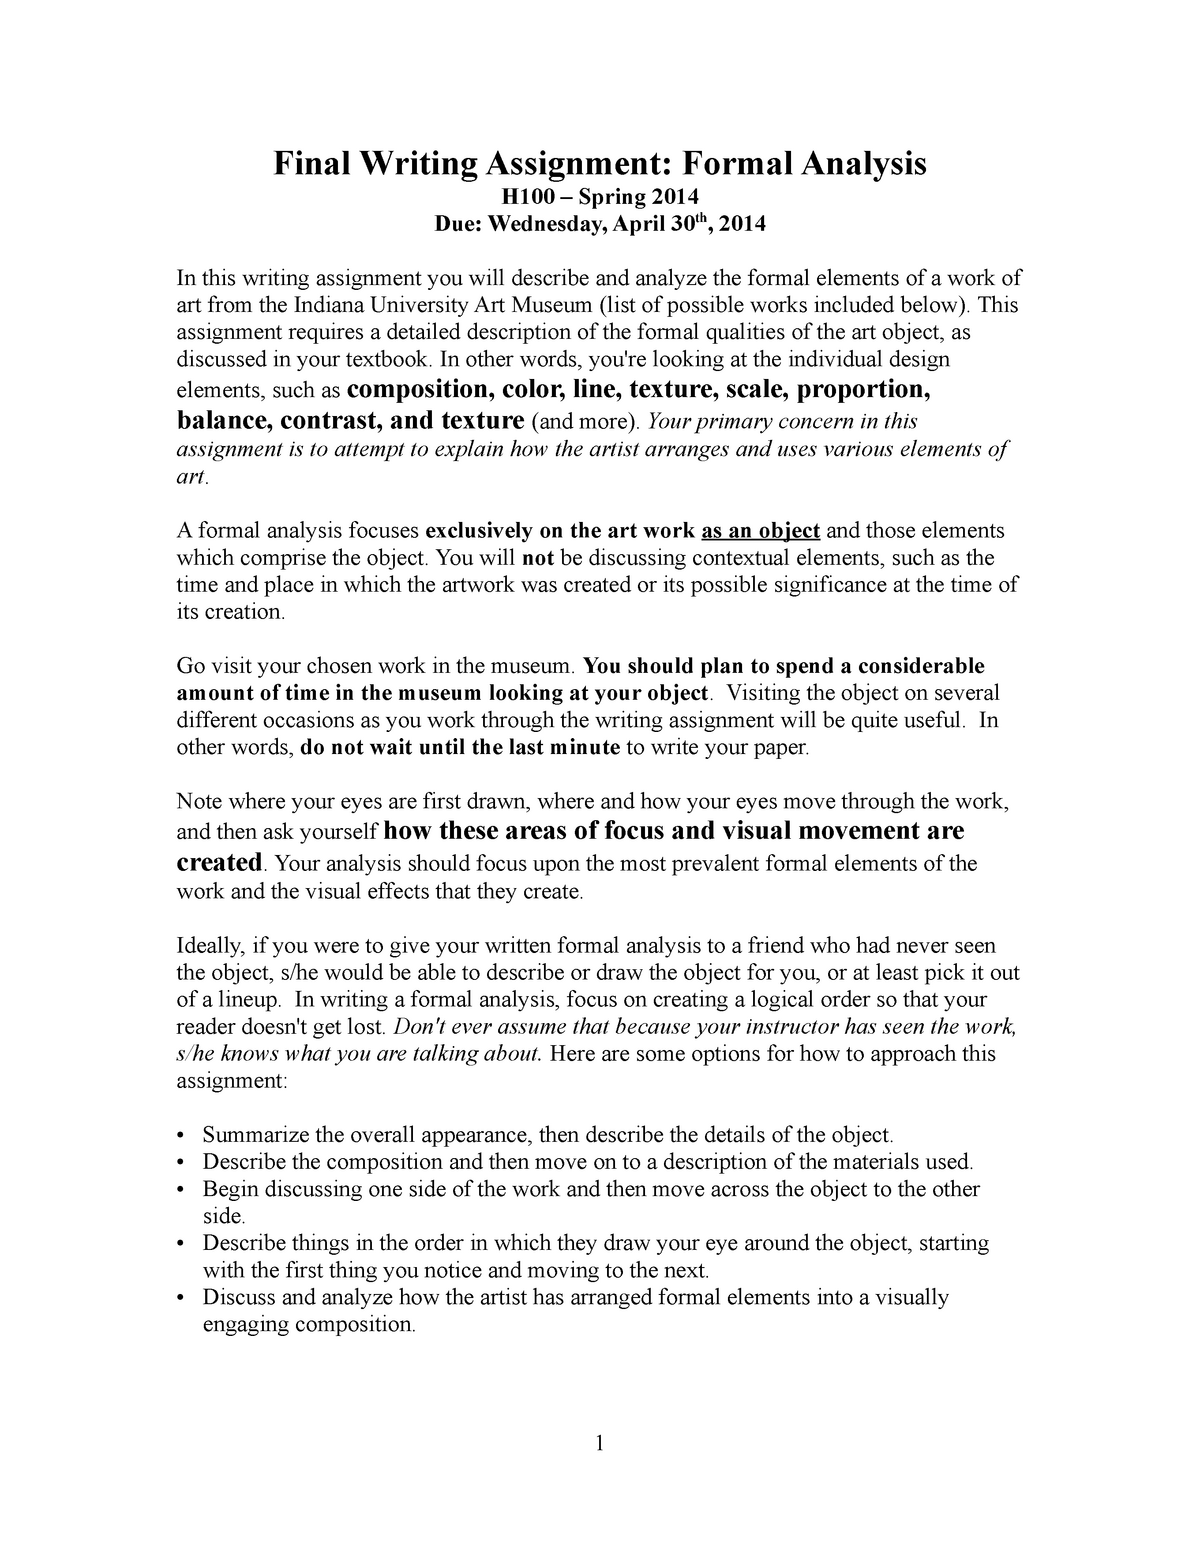 How to write an analysis of a piece of art senior j2ee developer resume